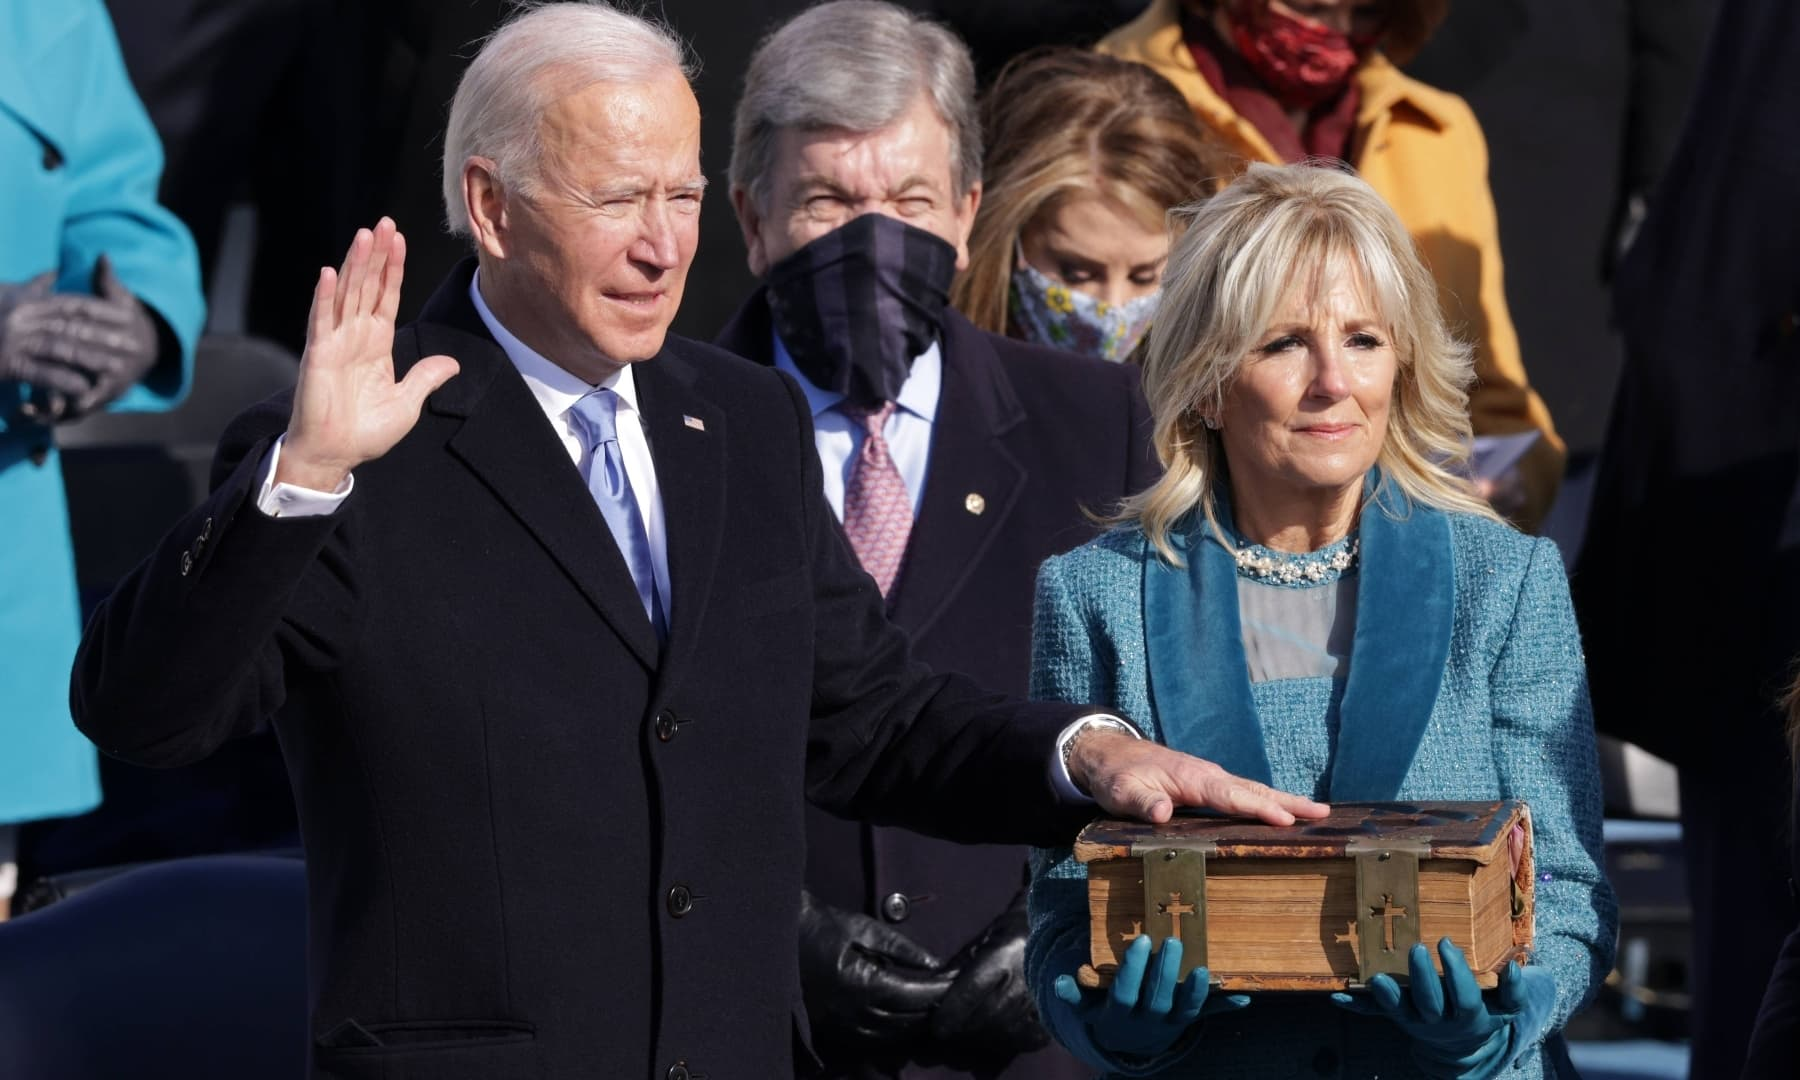 Joe Biden is sworn in as US President as his wife Dr Jill Biden looks on during his inauguration on the West Front of the US Capitol on January 20 in Washington, DC. — AFP